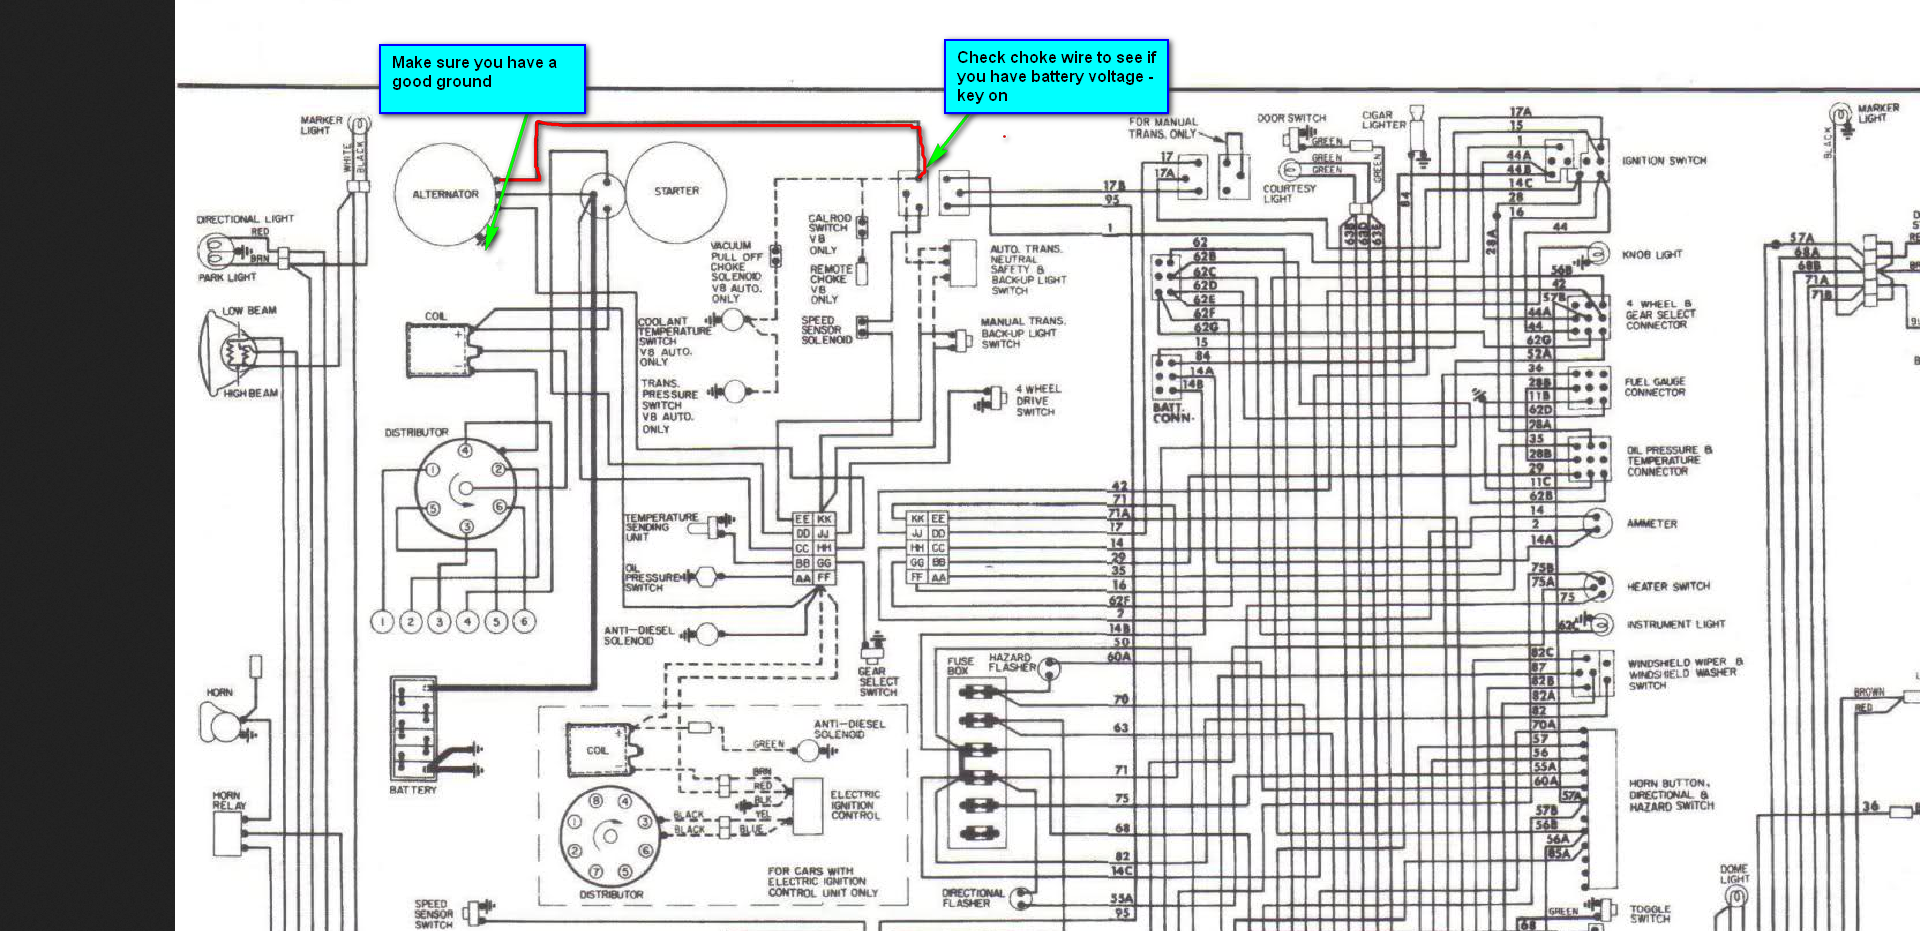 Scout Boat Wiring Diagram Library Basic Ignition Switch View With International 4700 I Ve Got A 79 Ii 345 And It Died On Me The